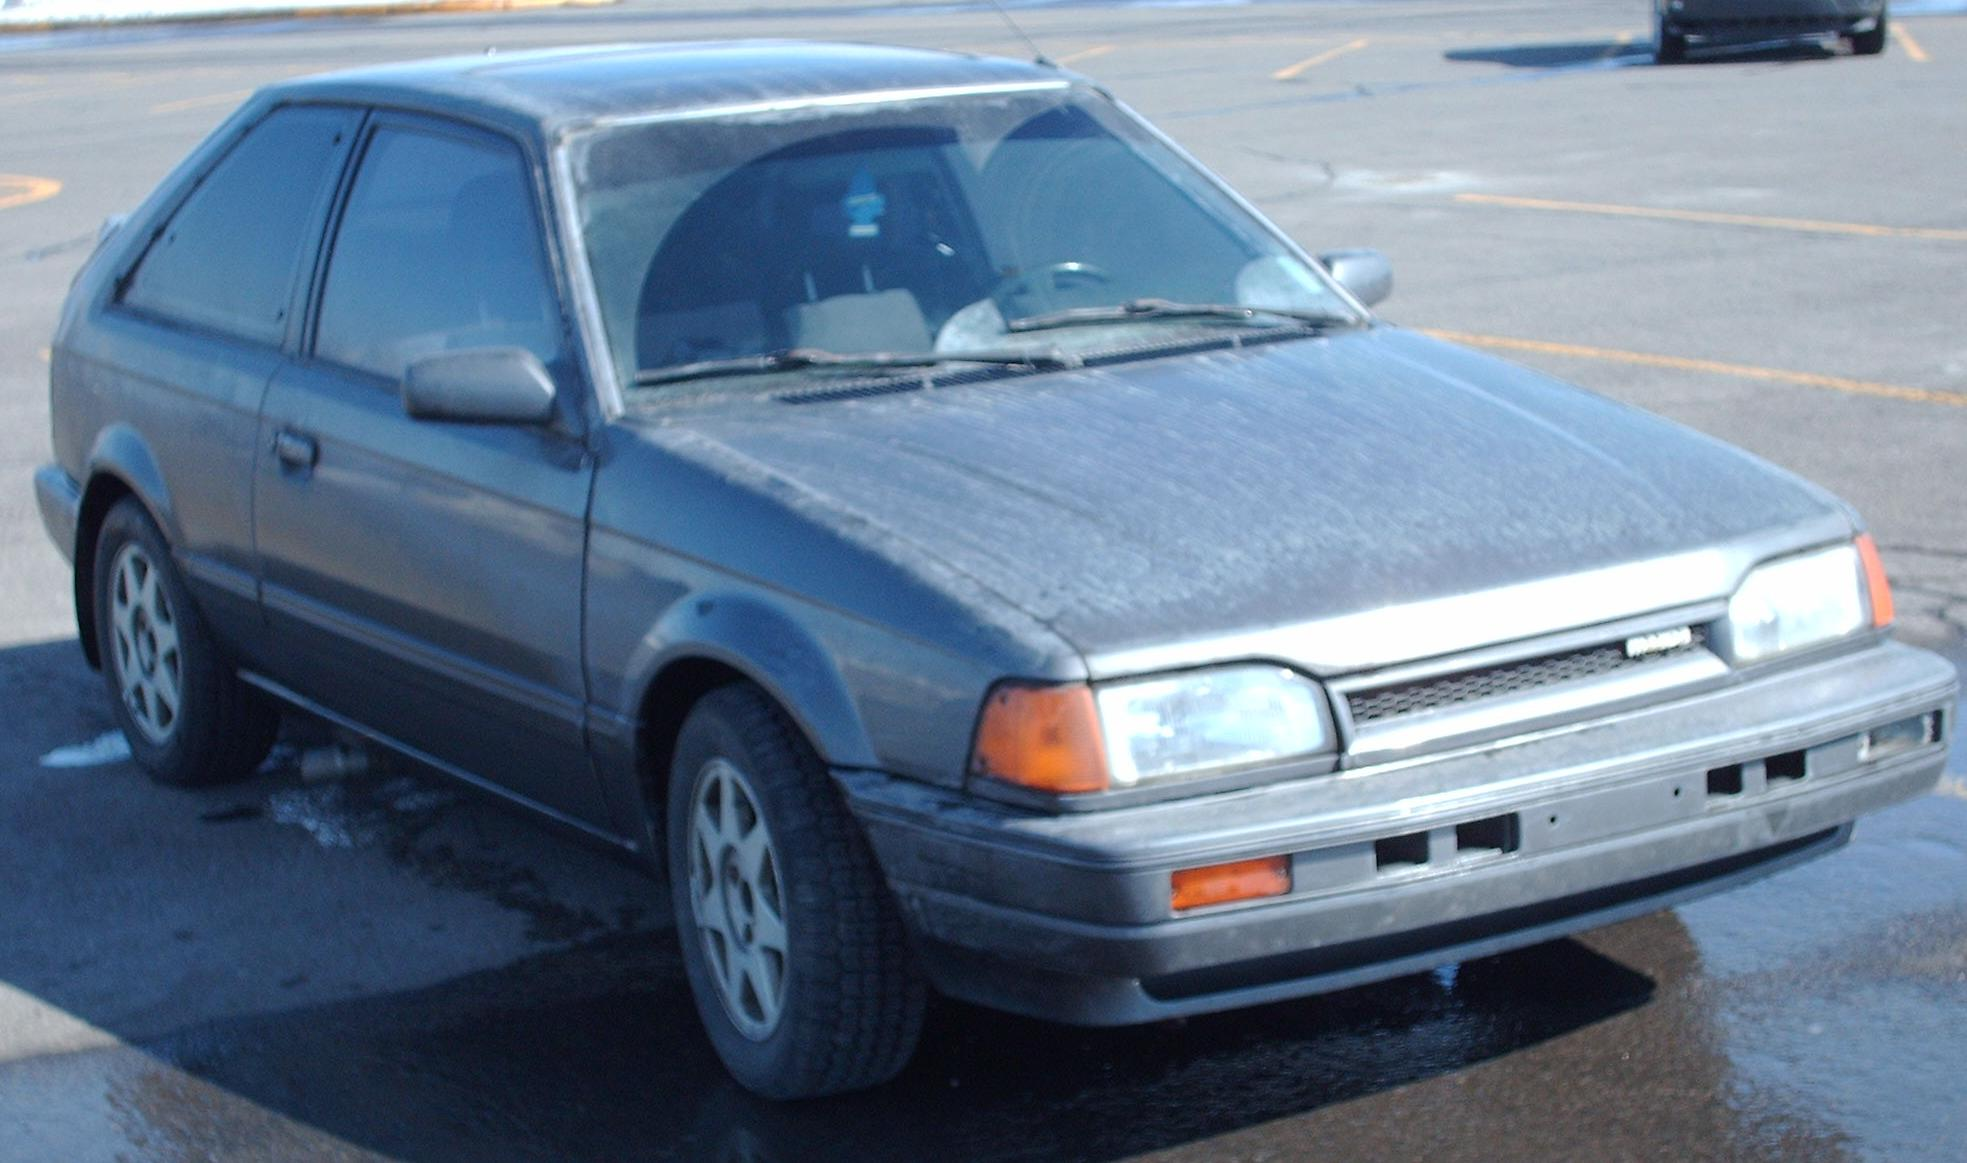 Mazda 323 1989 Review Amazing Pictures And Images Look